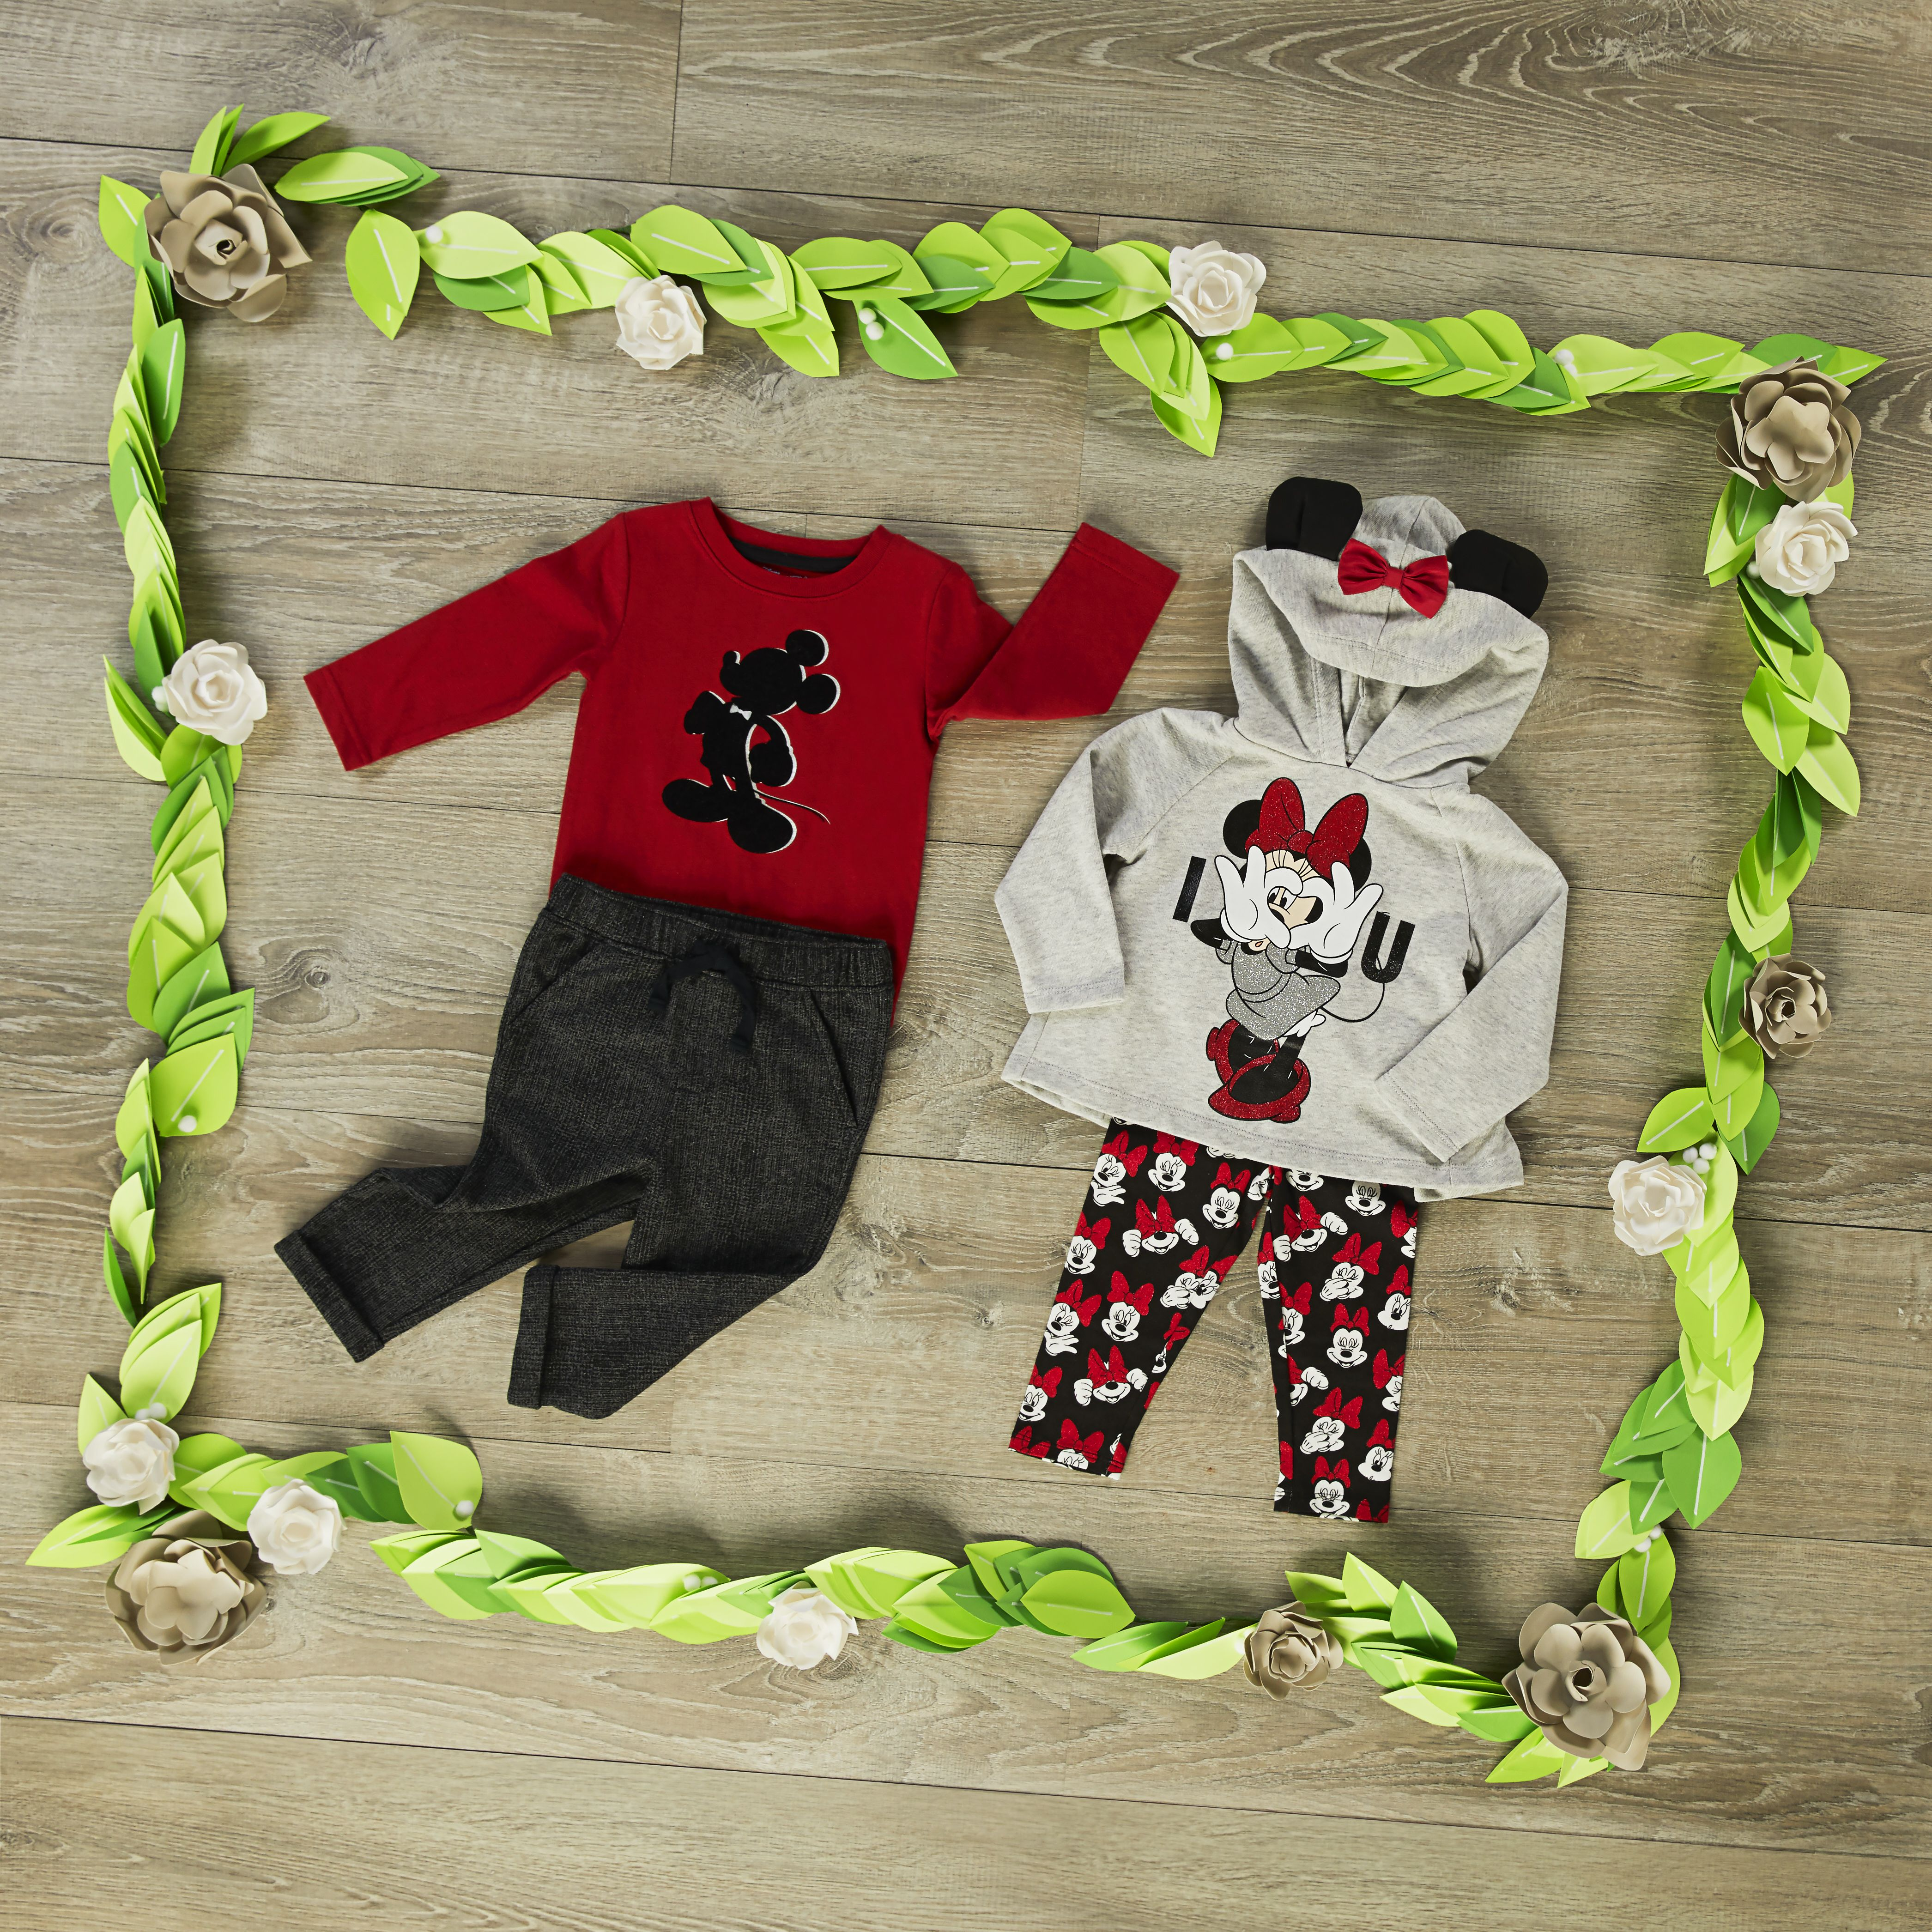 SAVE on all Disney Baby clothing accessories shoes and